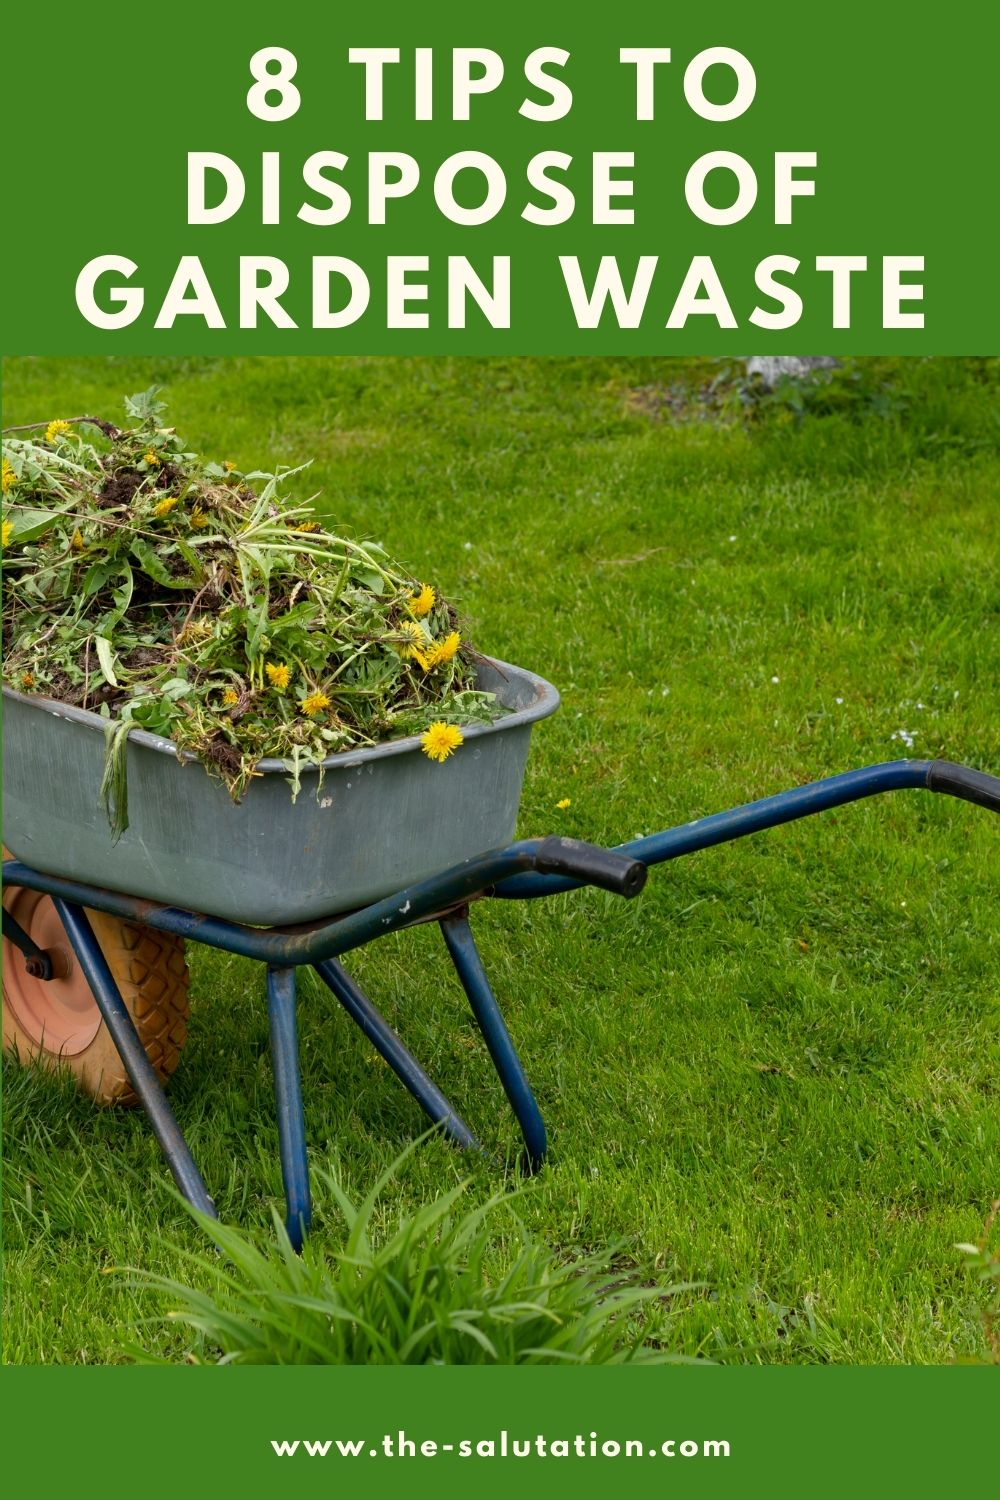 8 Tips to Dispose of Garden Waste 1